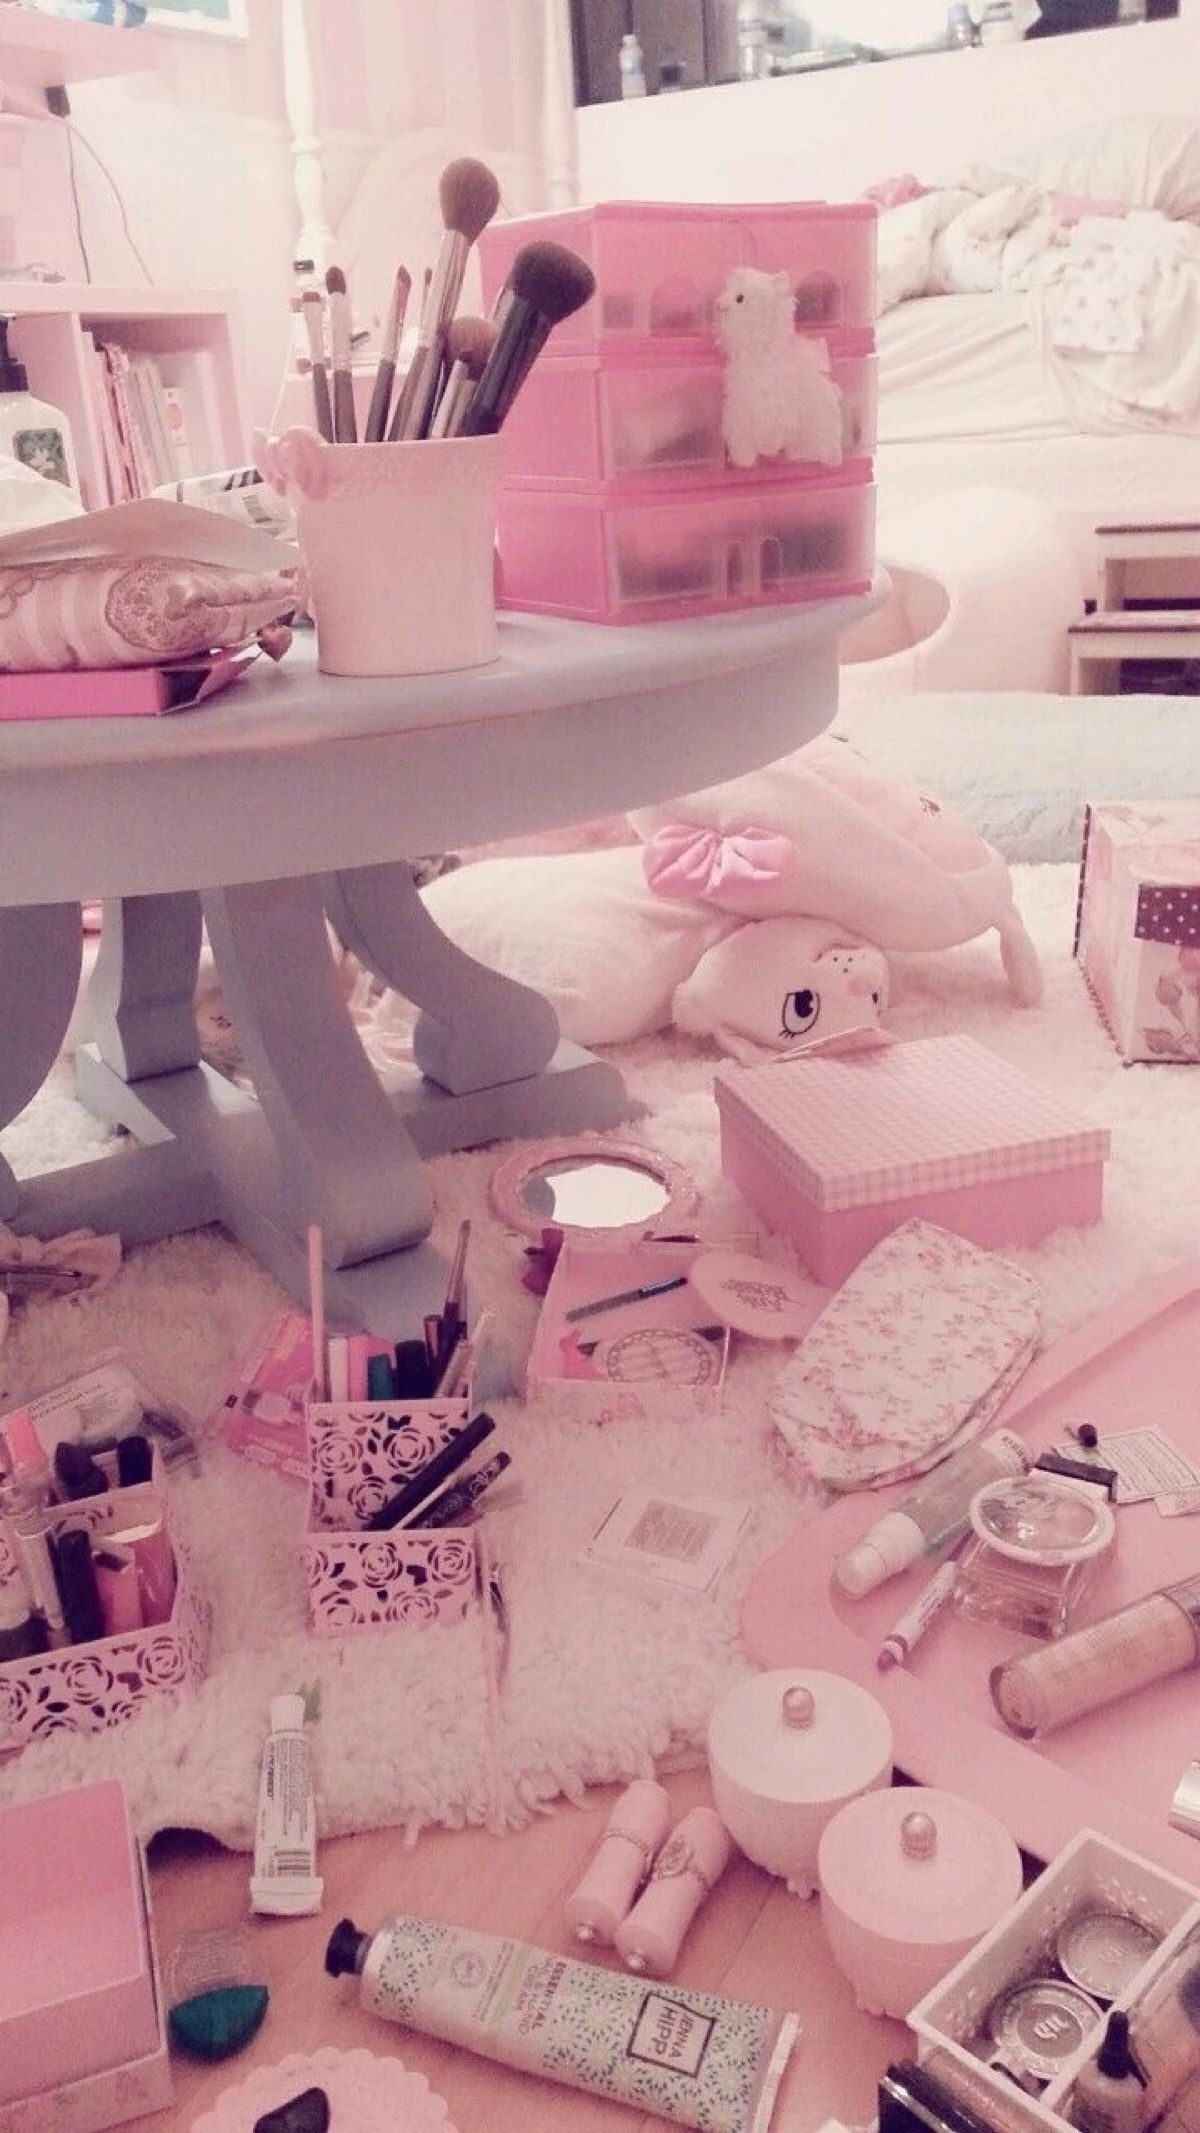 Pin by Pankeawป่านแก้ว on Rosa Pastel pink aesthetic